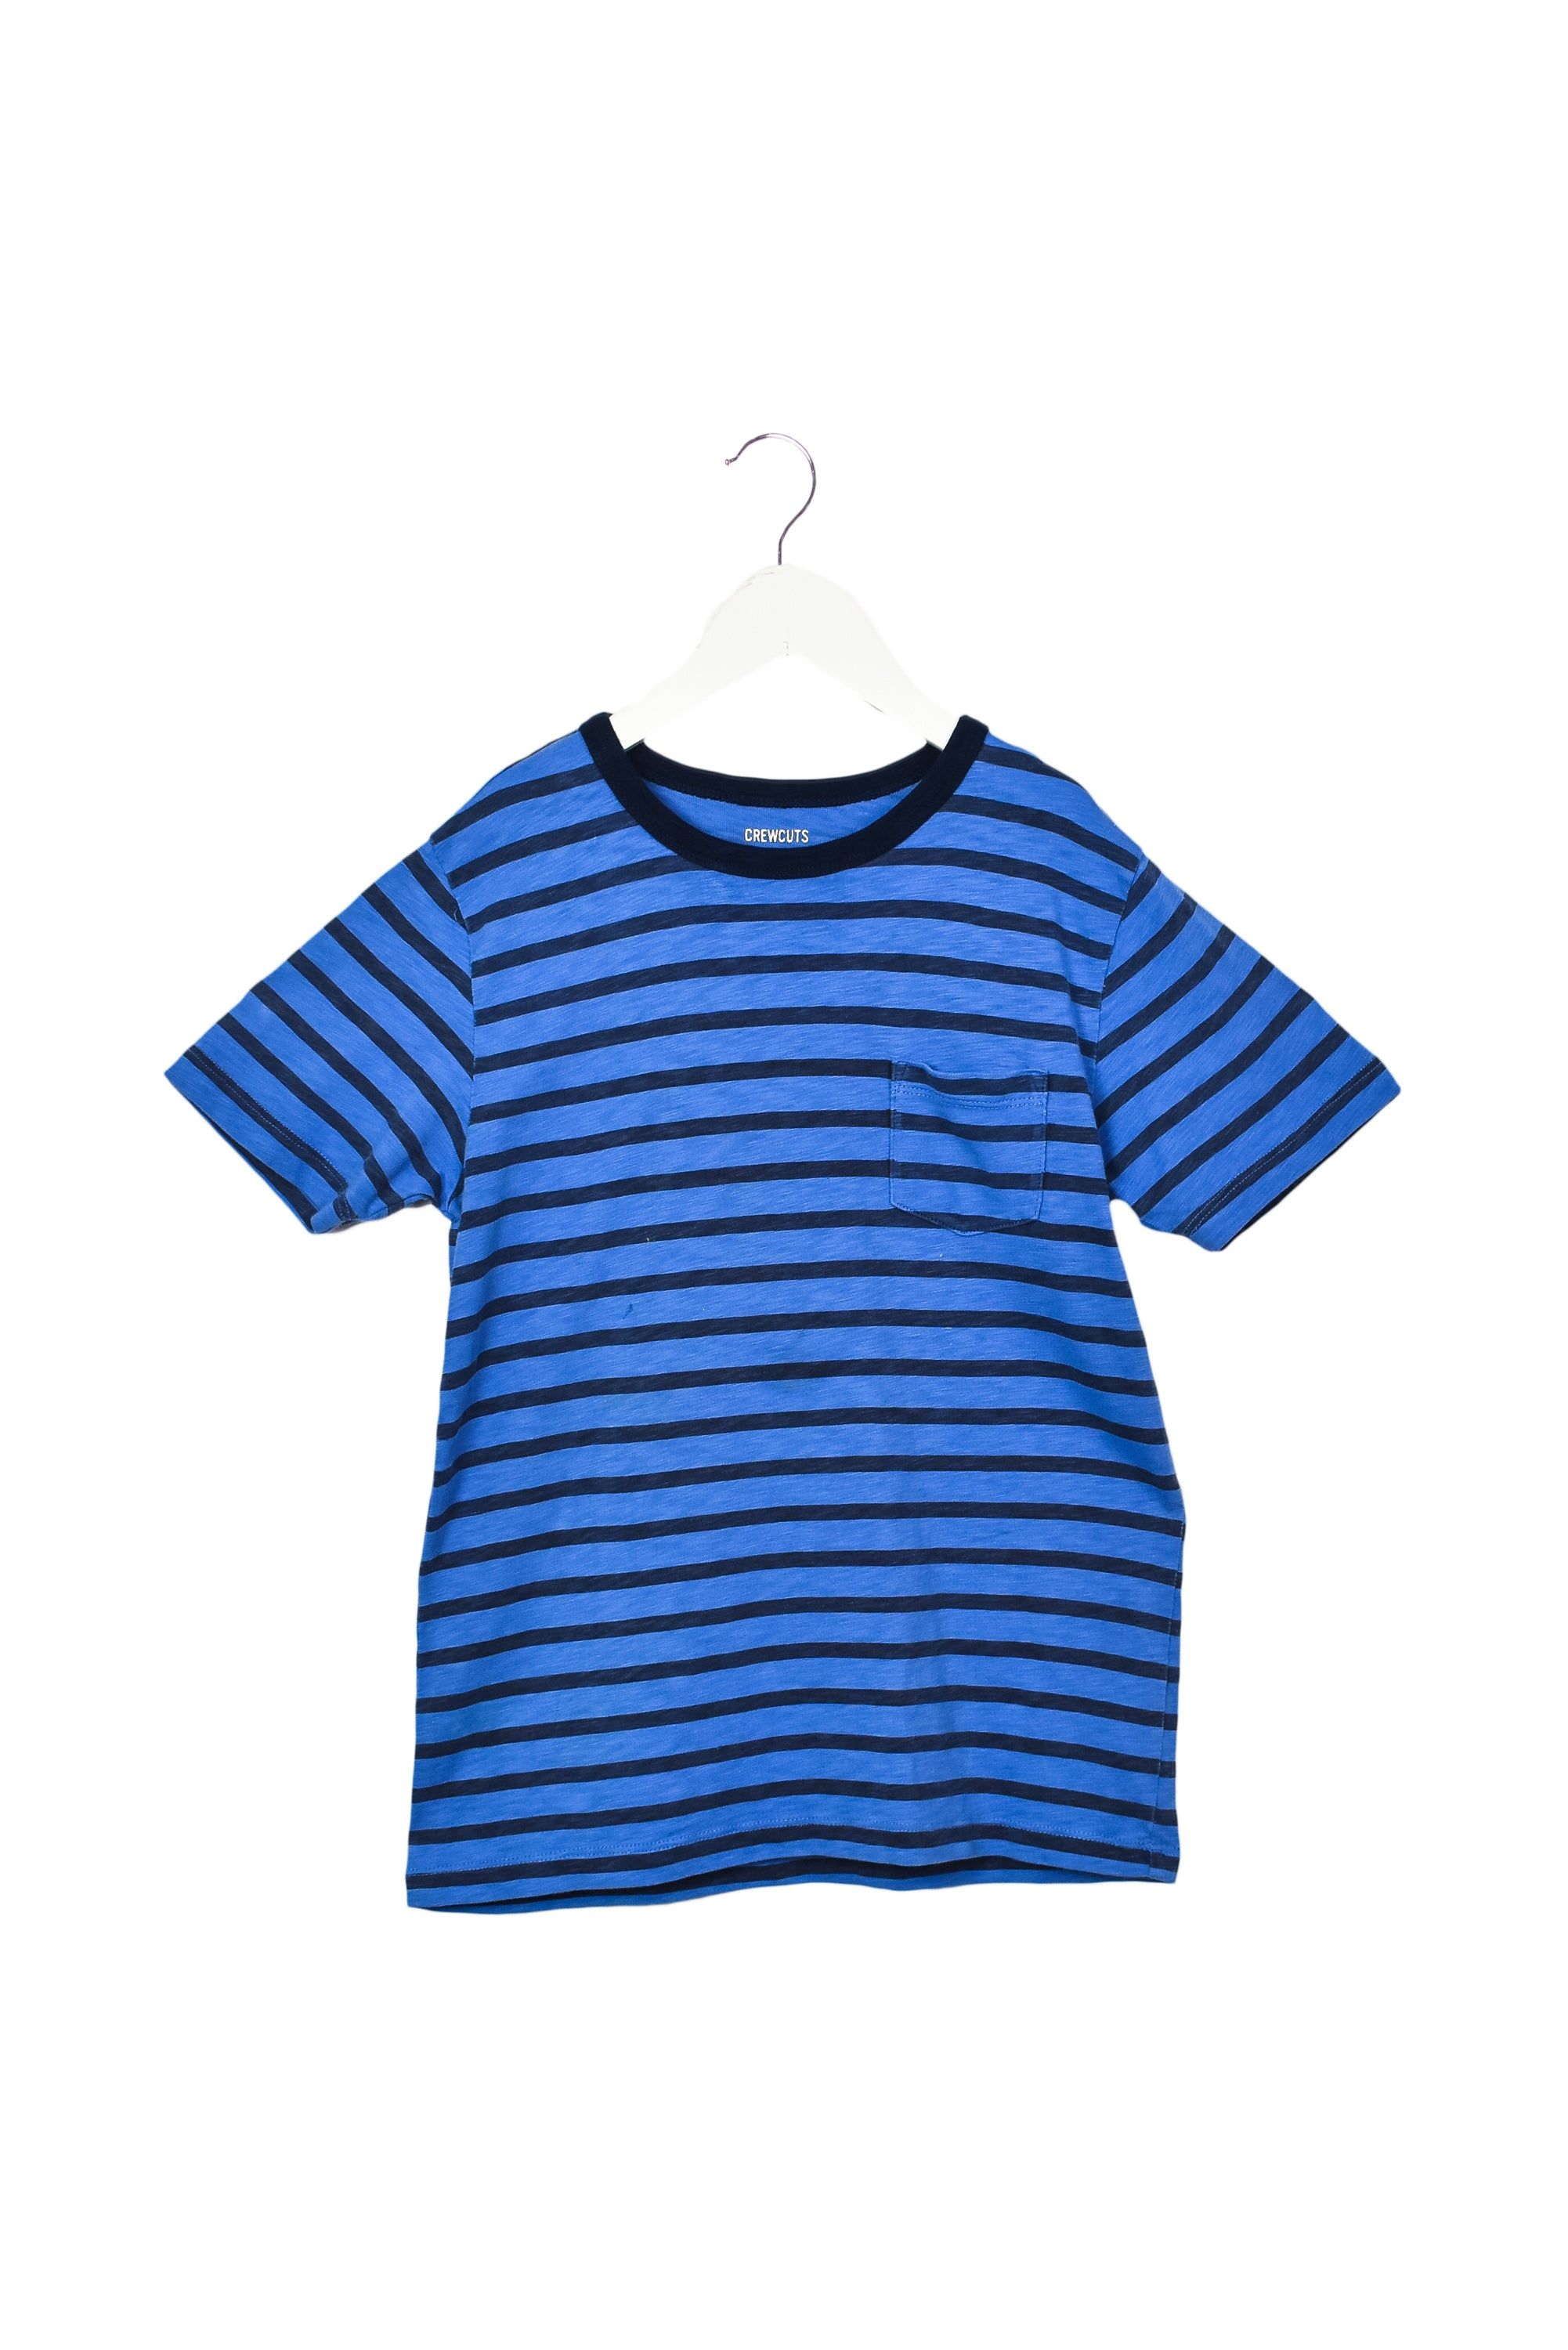 10037586 Crewcuts Kids~T-Shirt 10 at Retykle